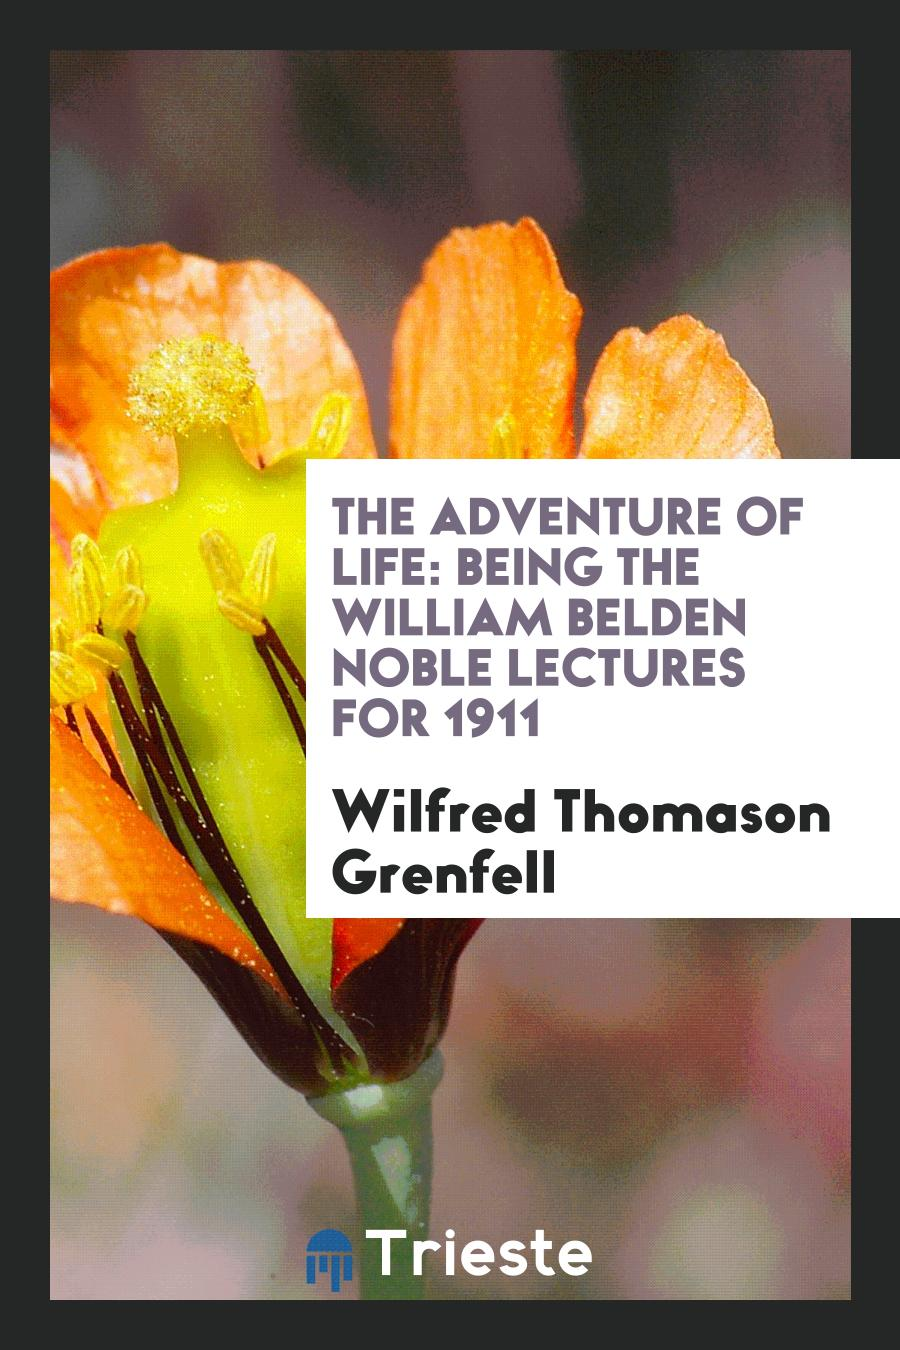 The Adventure of Life: Being the William Belden Noble Lectures for 1911